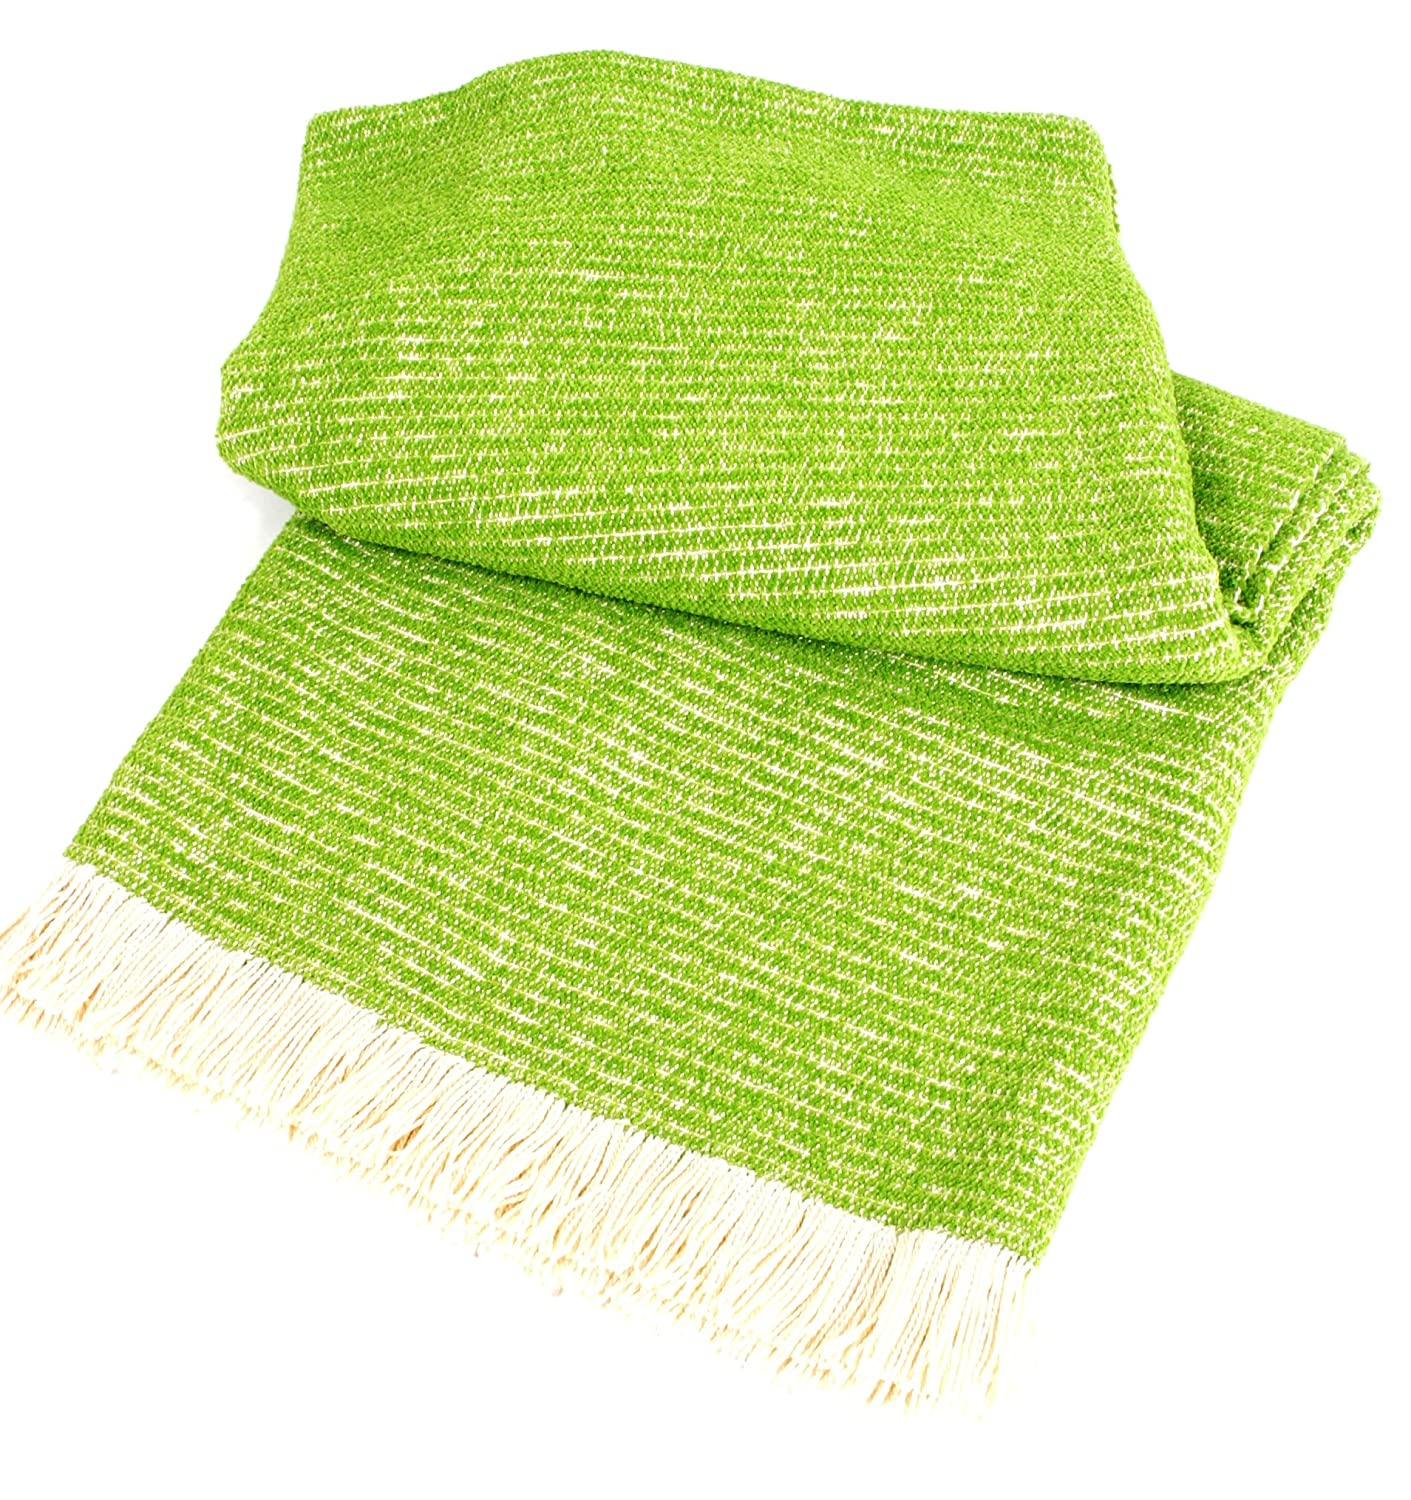 Apple Textillery Sunbrella Chenille Solid Throw, Cadet, 44 by 72-Inch